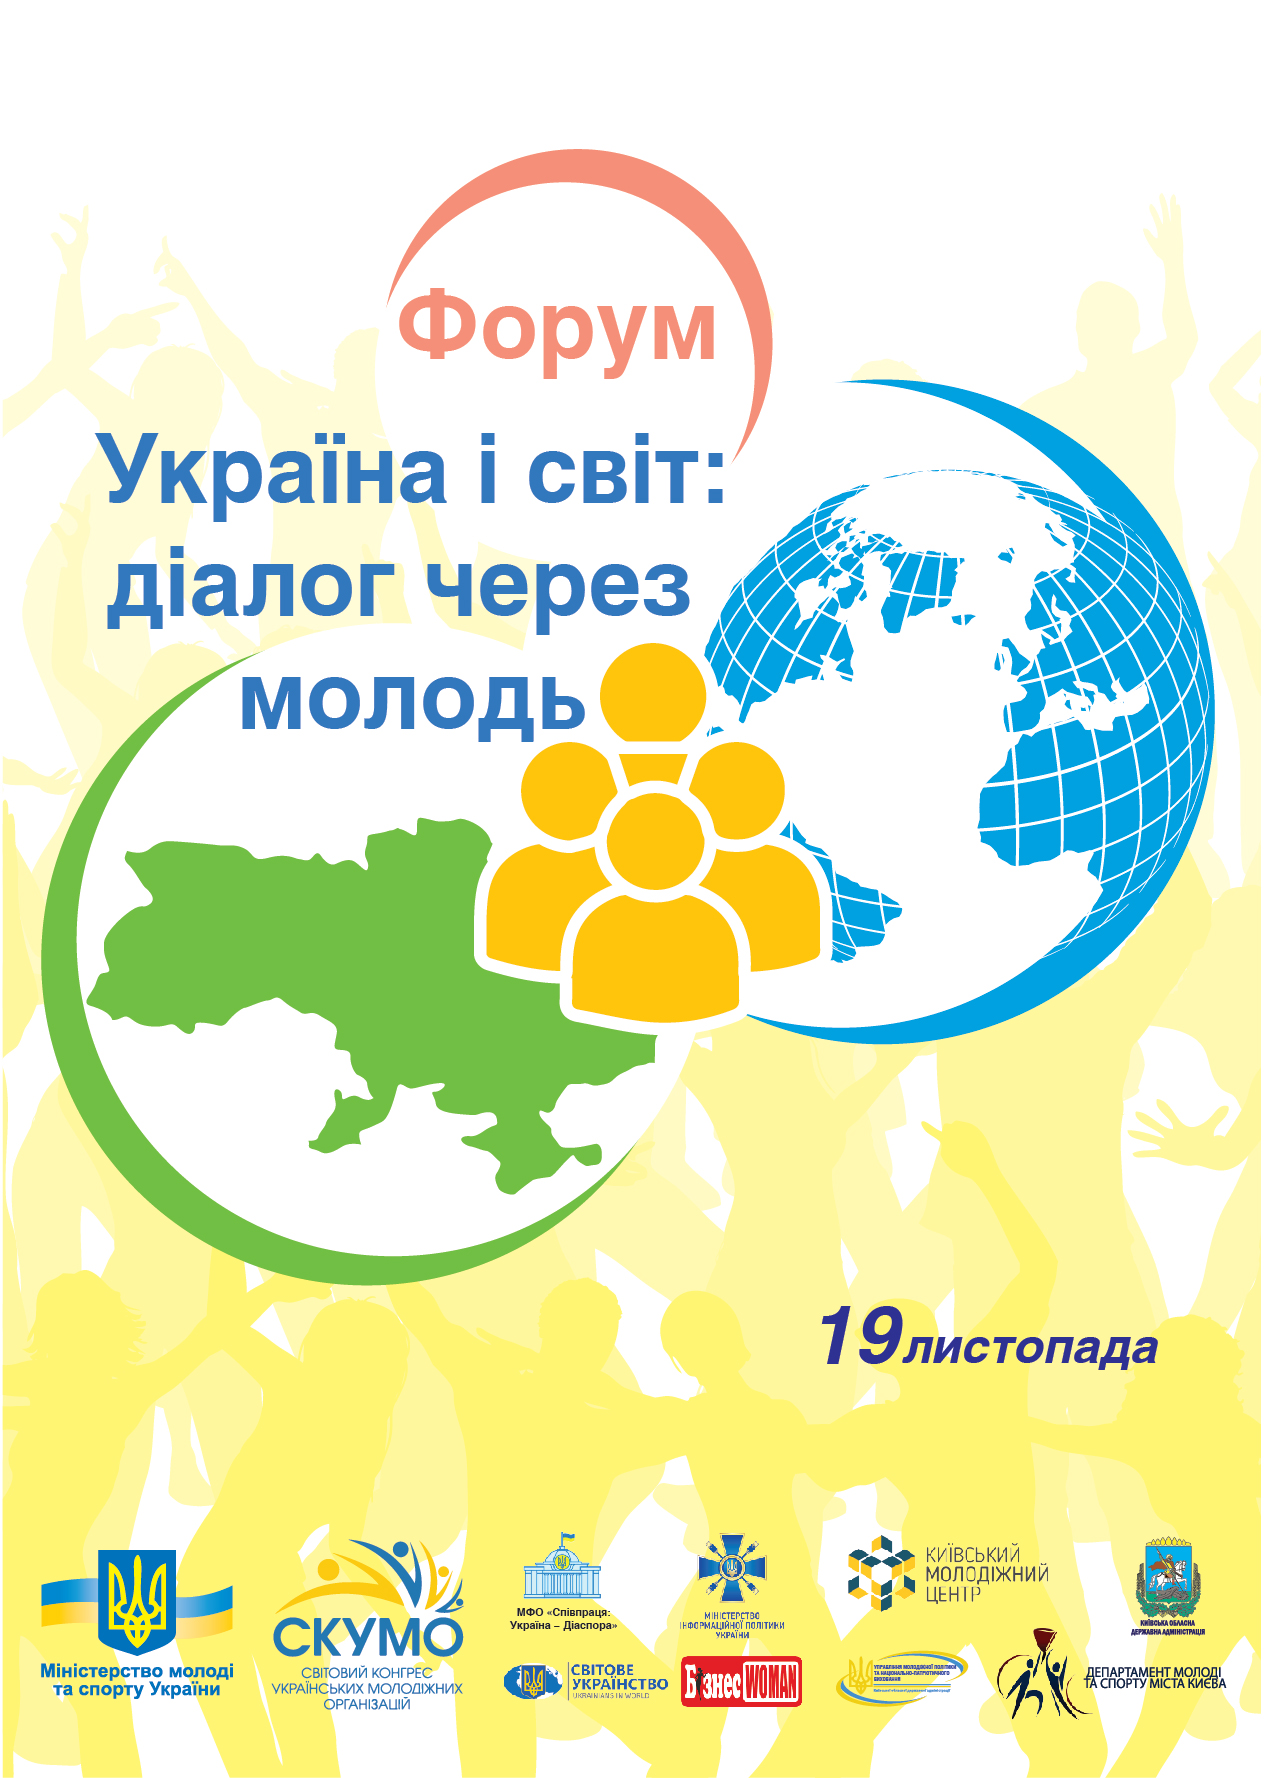 """Forum """"Ukraine and the World: Dialogue through Youth"""" will take place in Kyiv"""